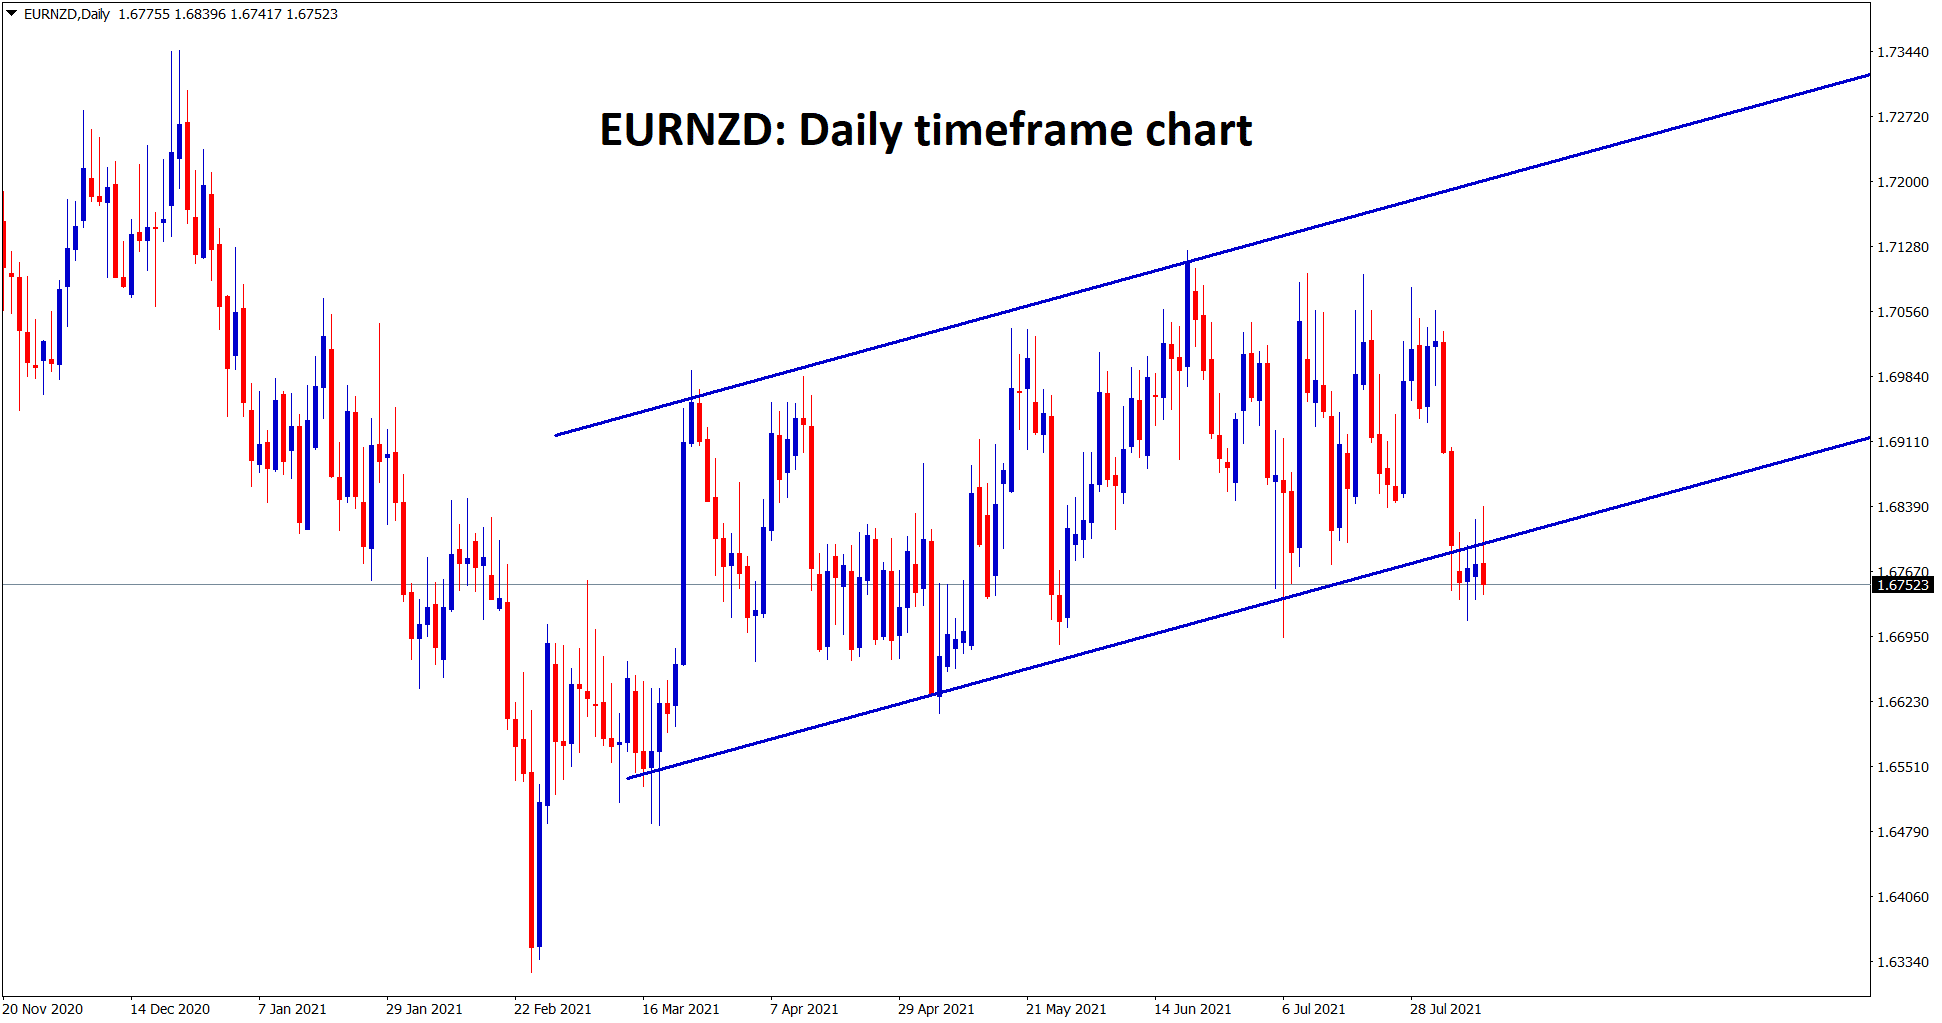 EURNZD struggles to move up however EURNZD is trying to range before falling down. wait for the confirmation of sellers.